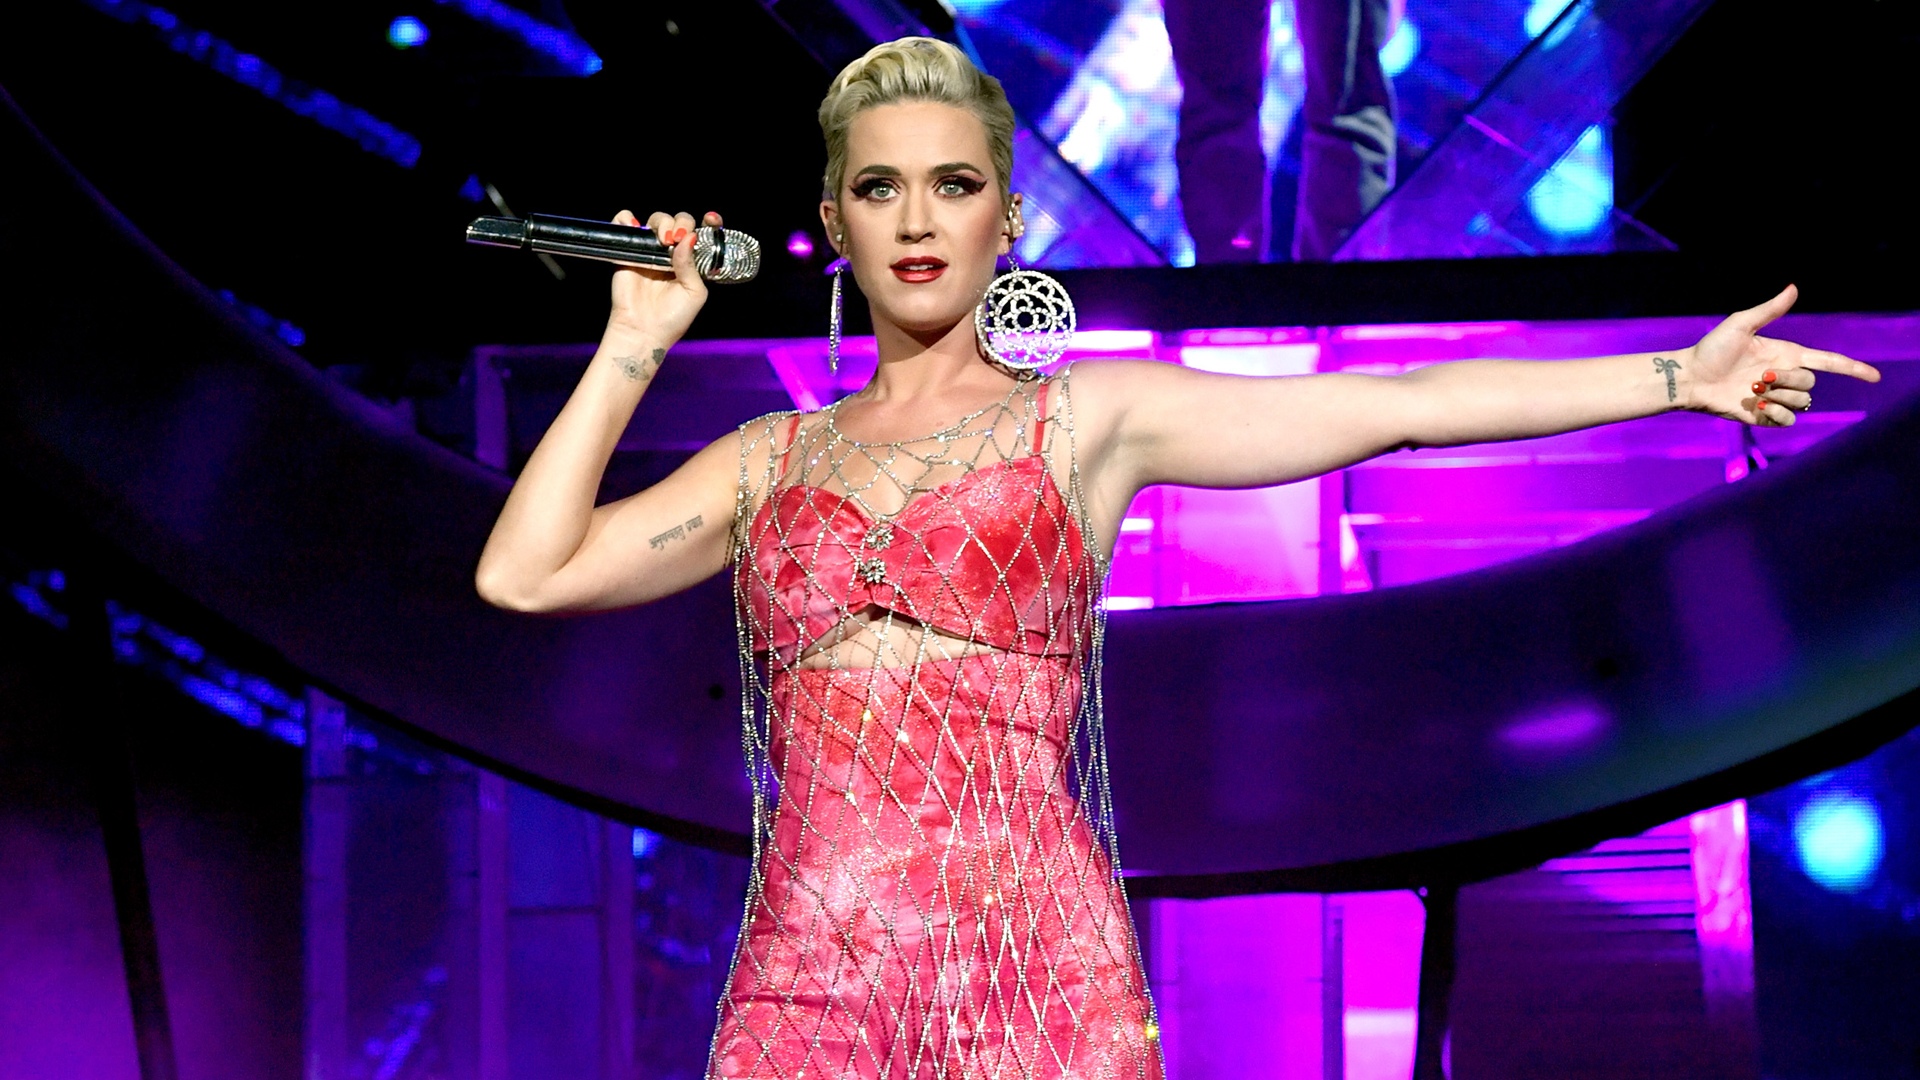 Copyrighting the 'Building Blocks' of Music? Why the Katy Perry Case Alarms Producers